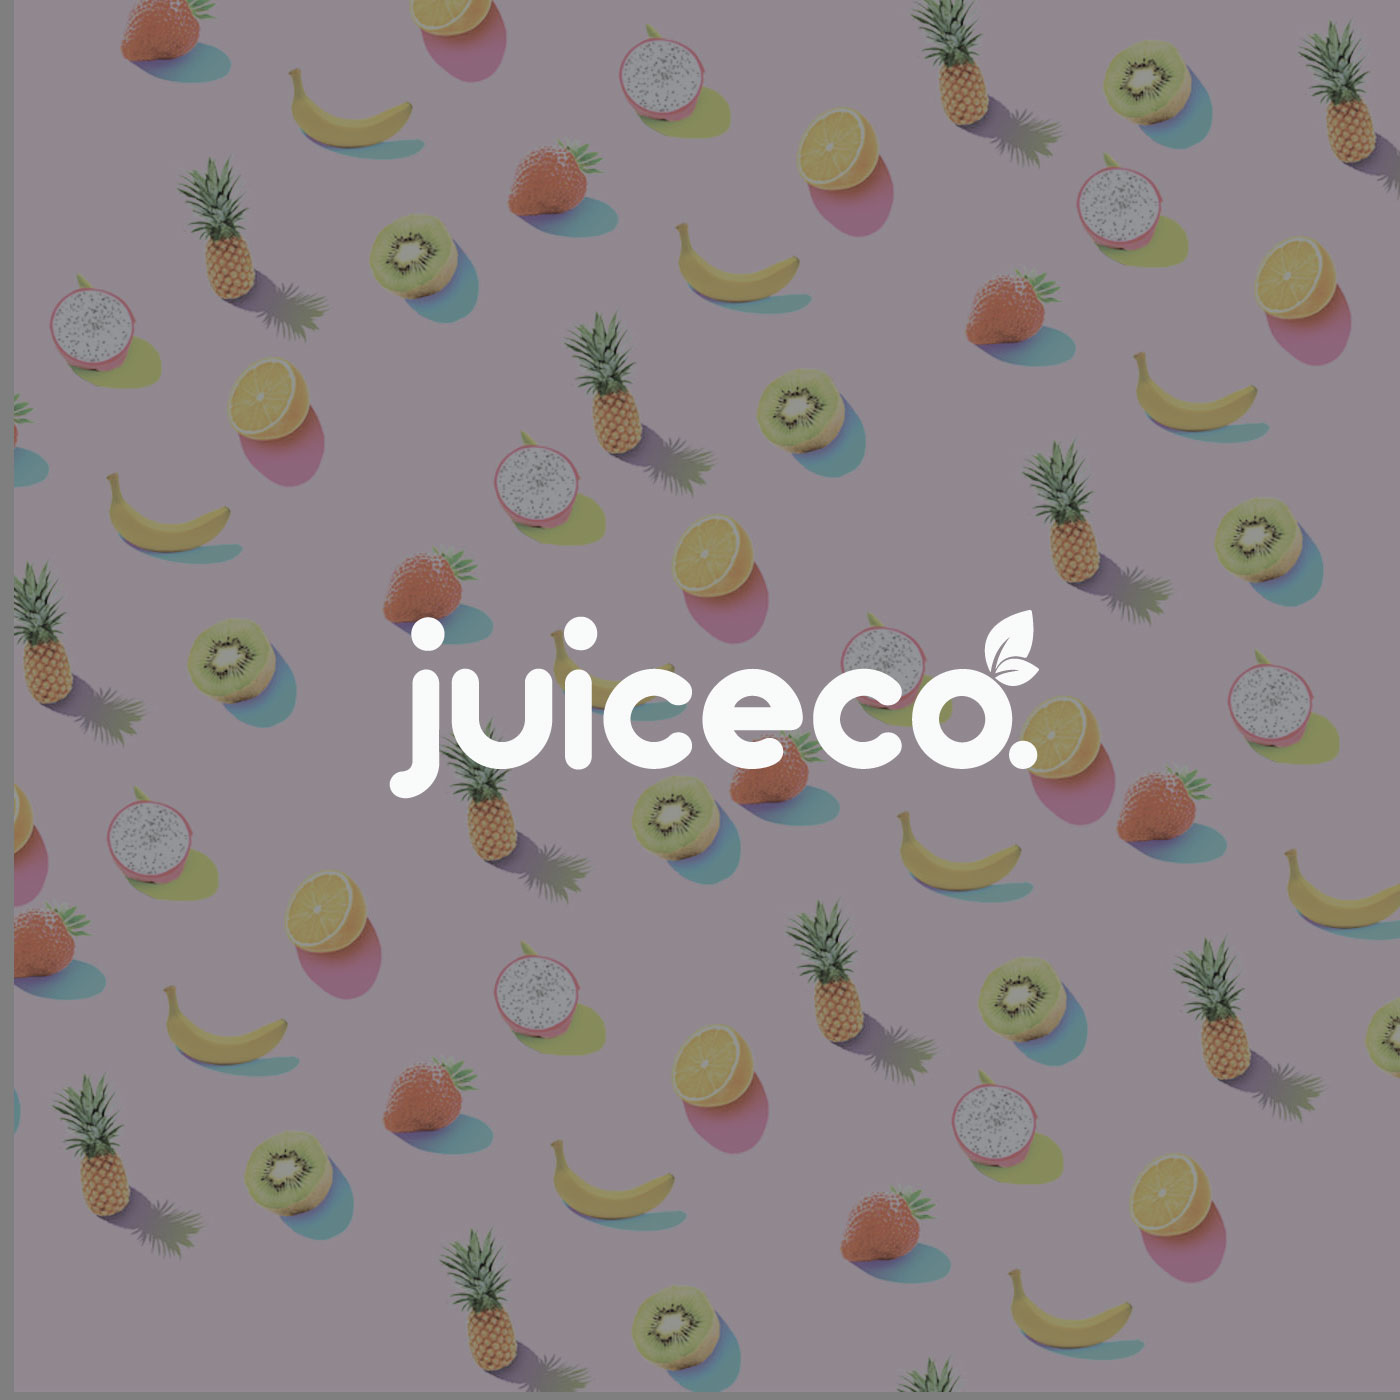 juiceco-square